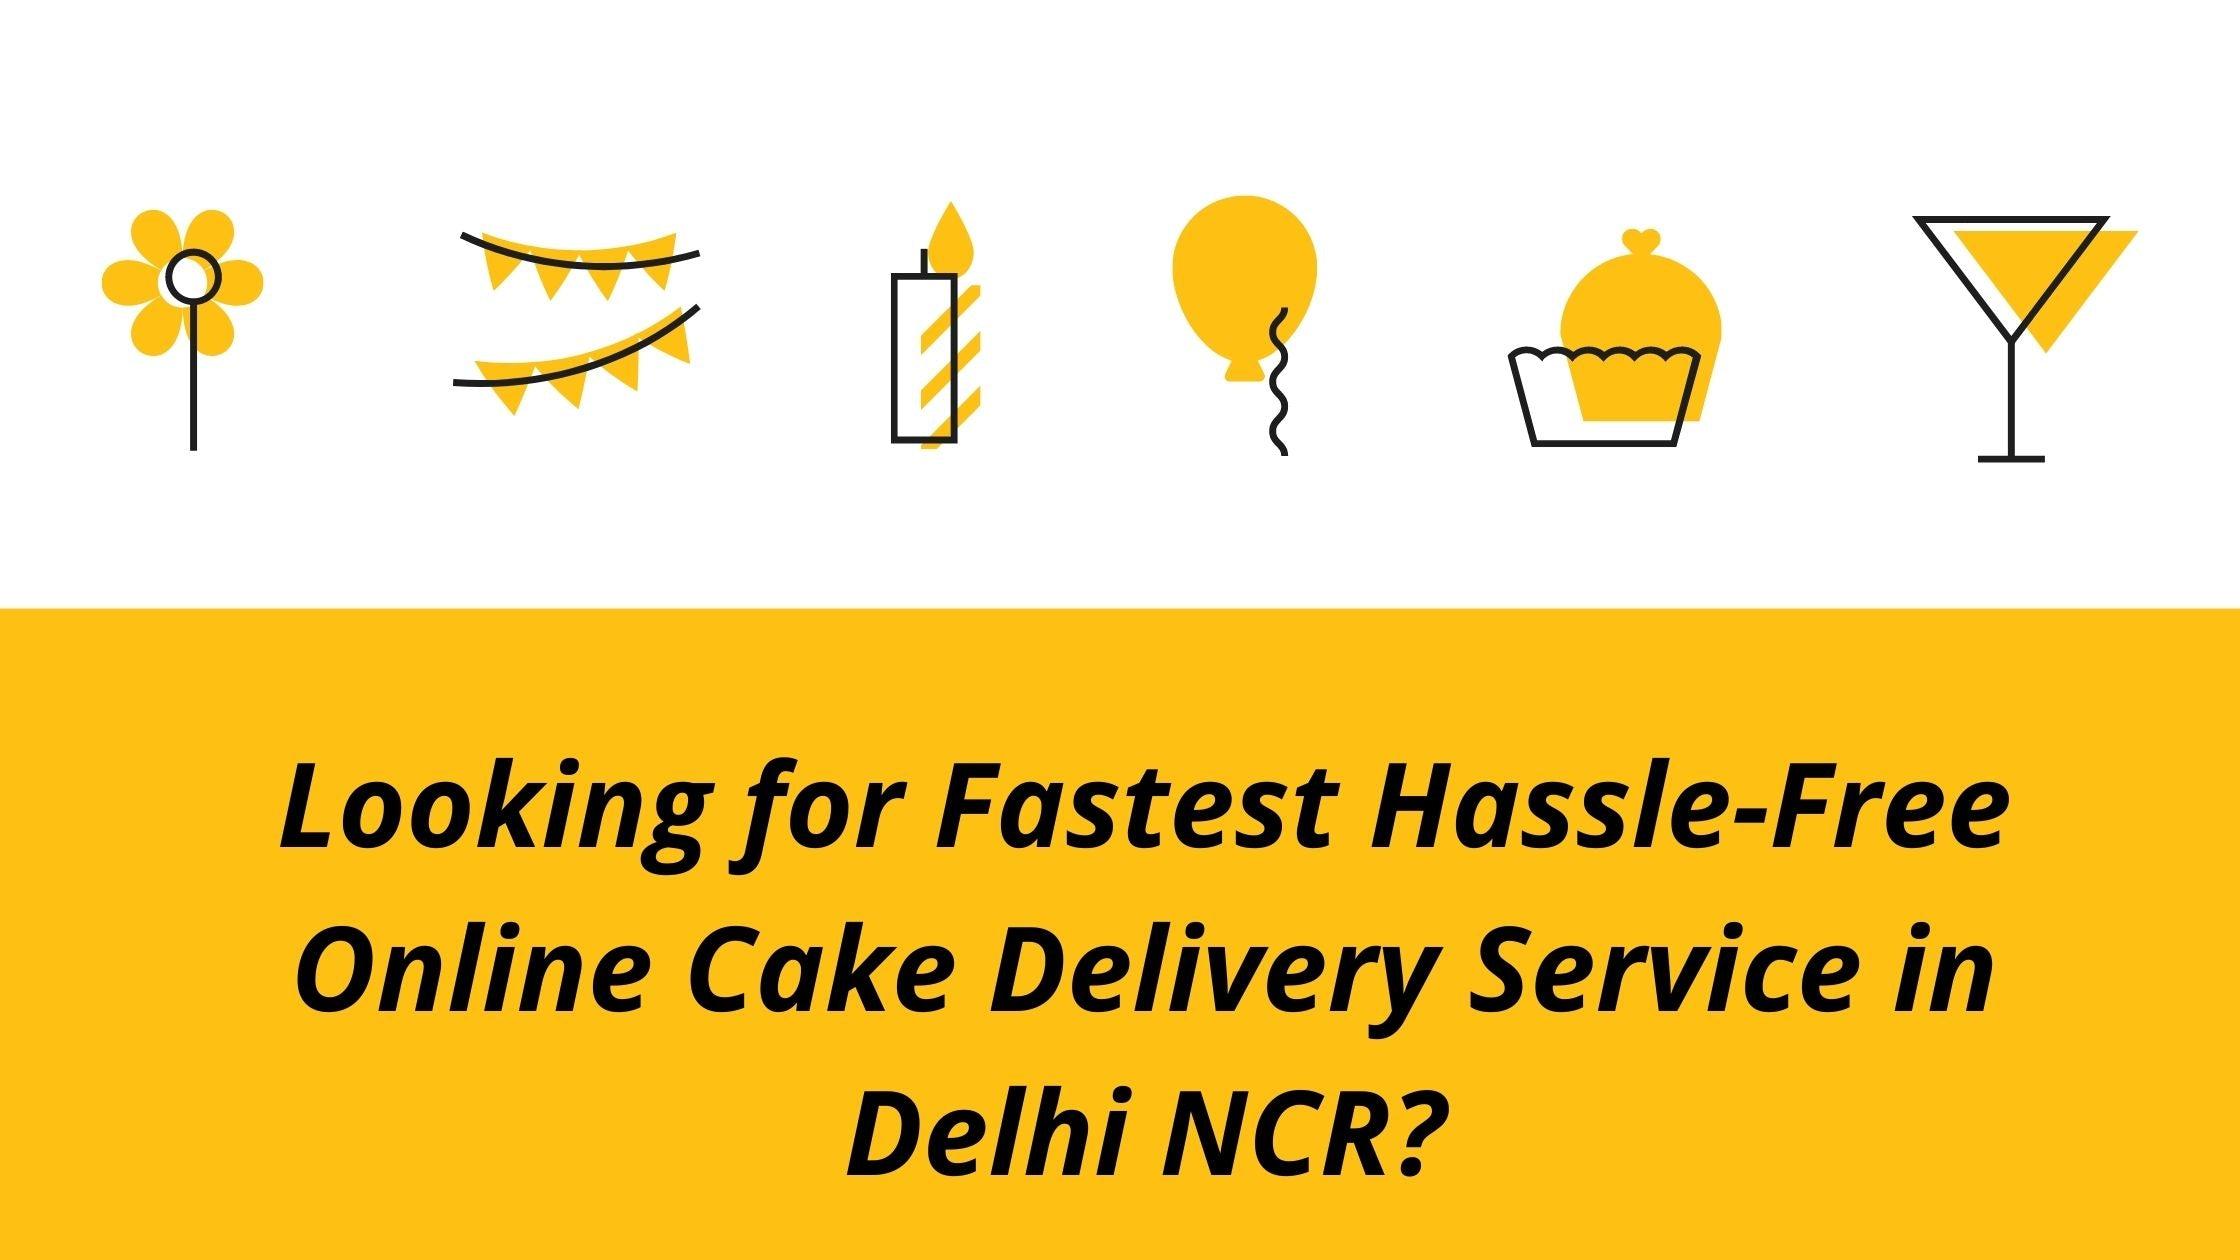 Looking for Fastest Hassle-Free Online Cake Delivery Service in Delhi NCR?